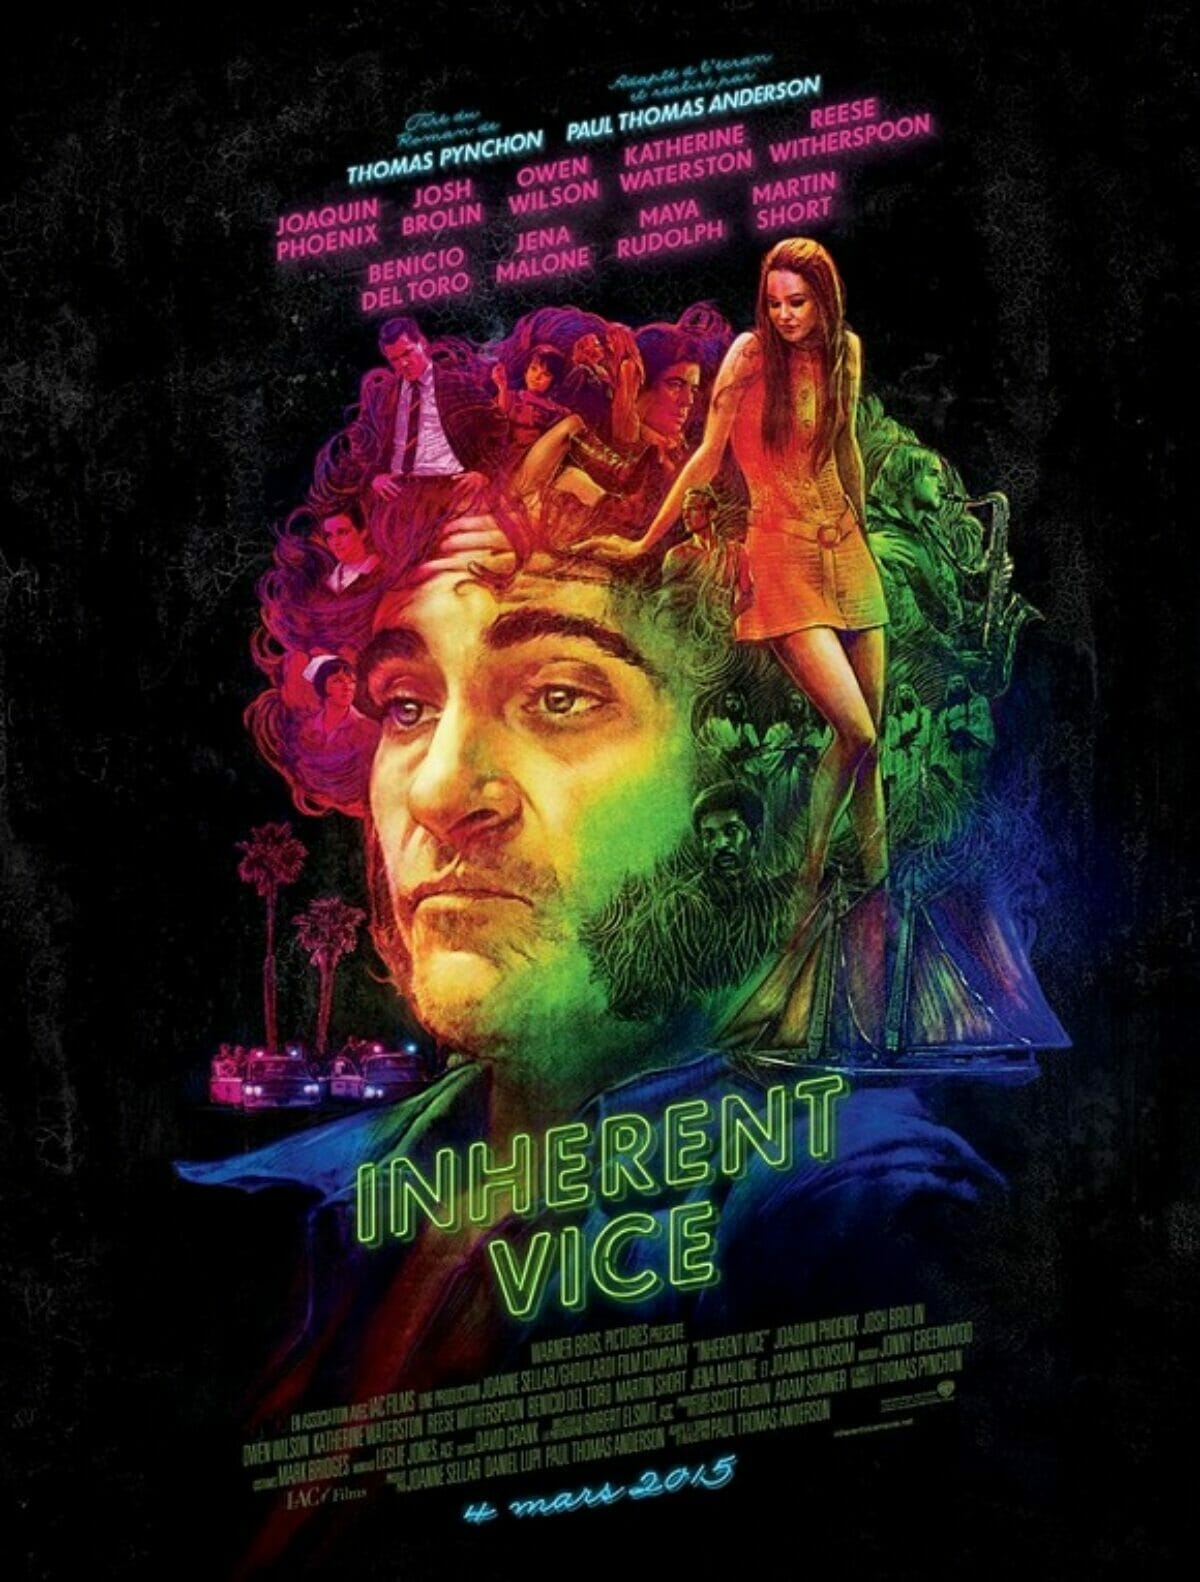 Inherent-Vice-poster-France